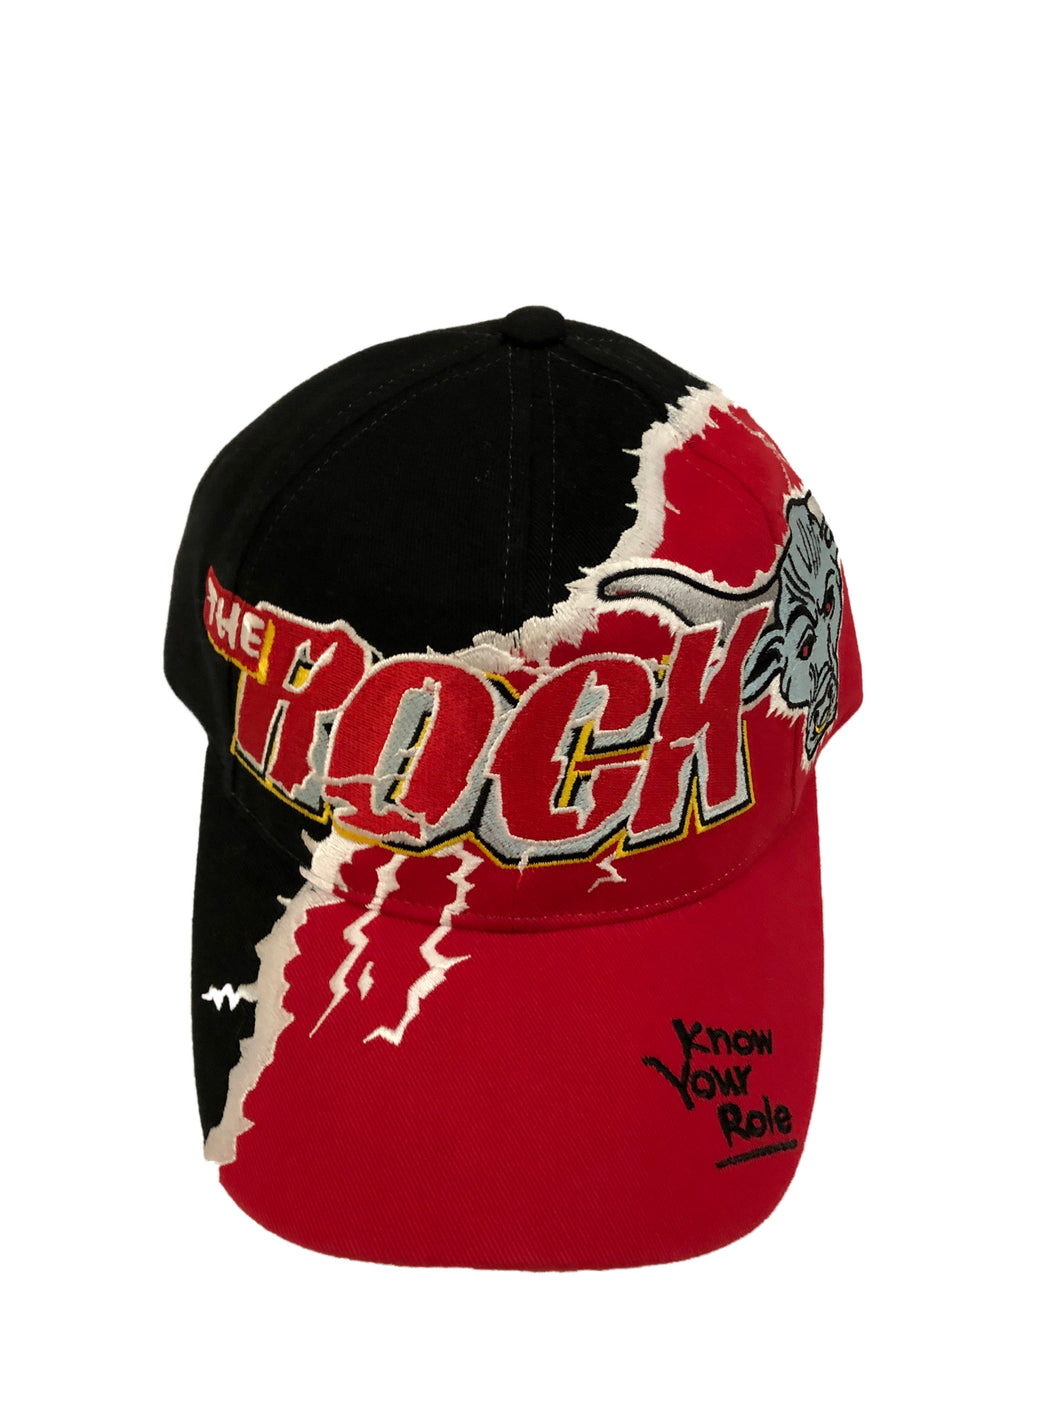 The Rock WWF Racing Hat